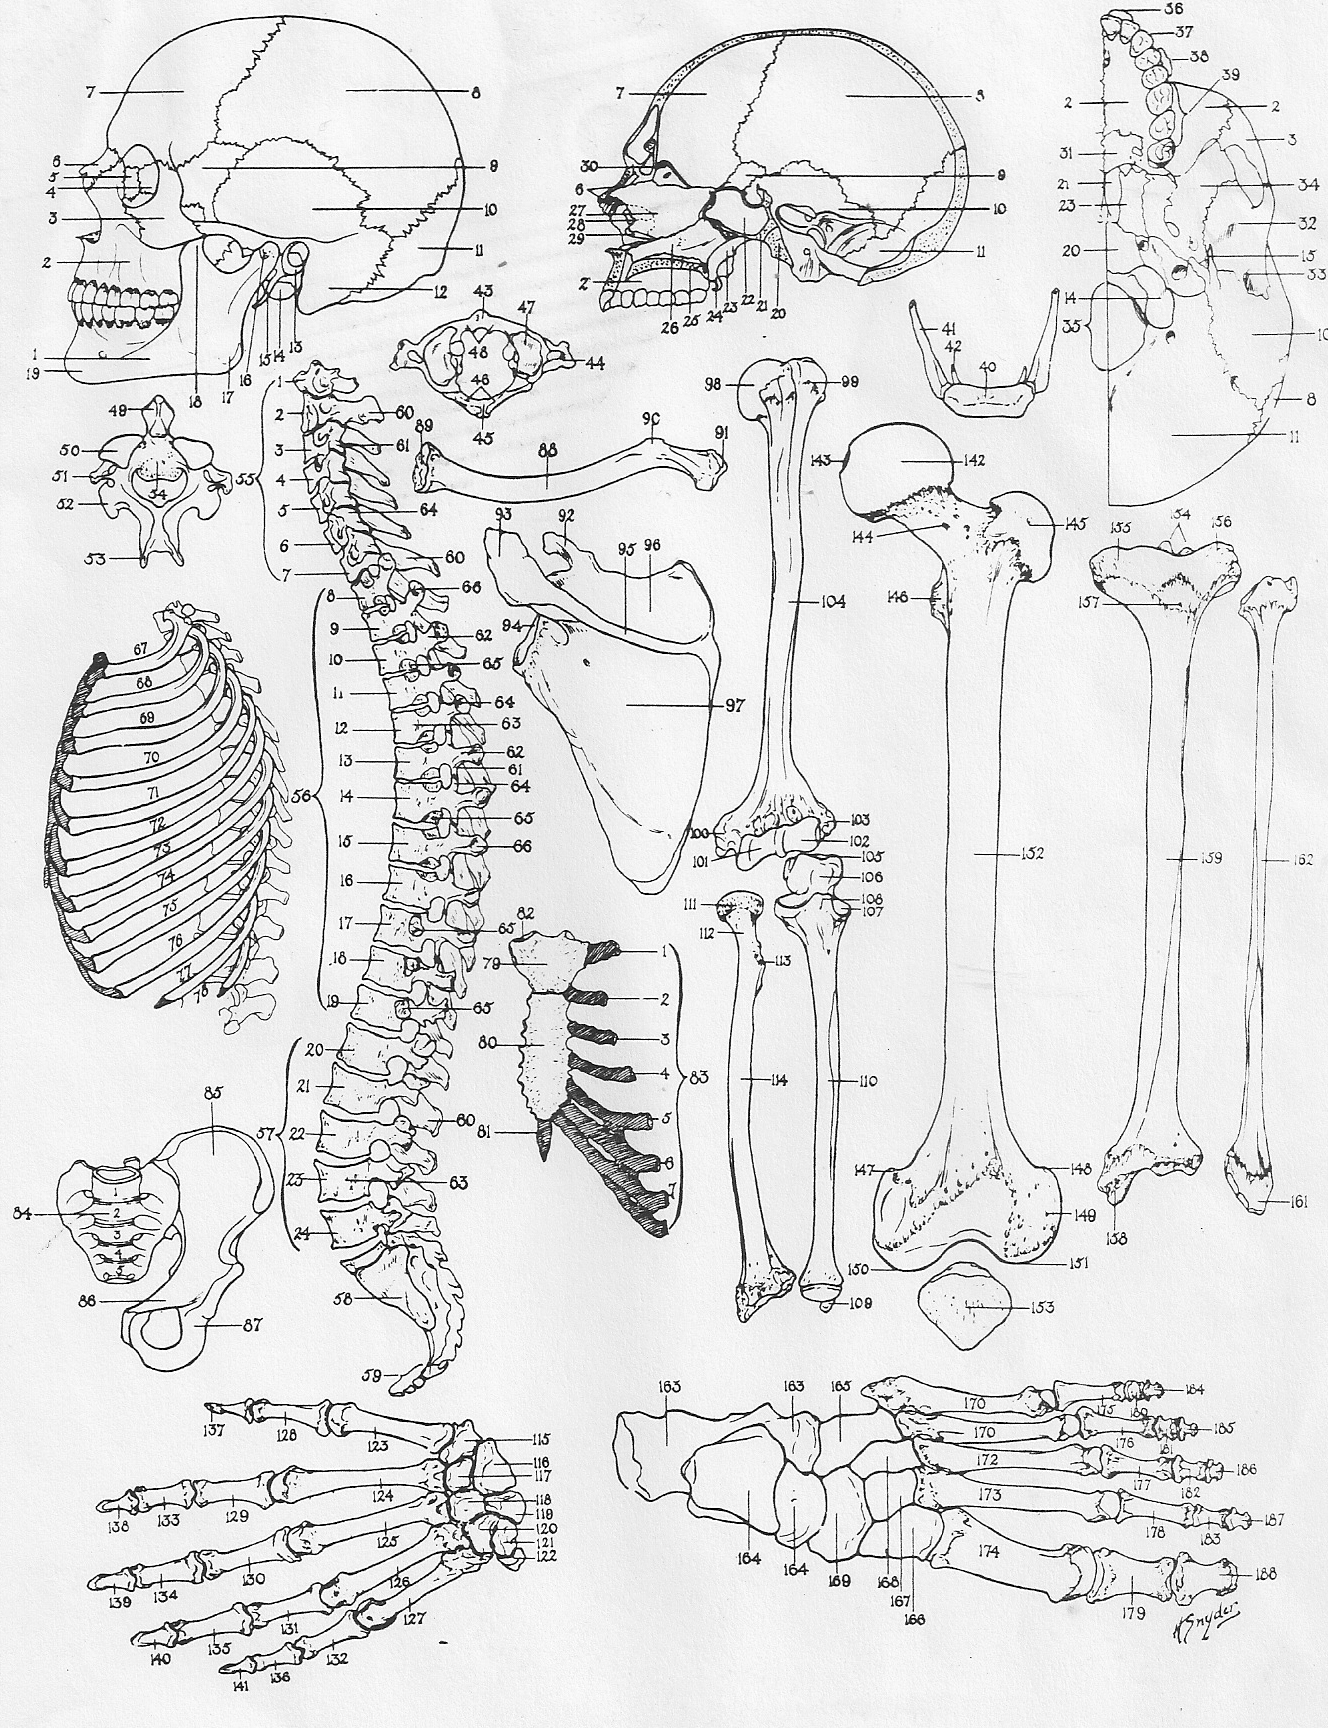 anatomy coloring page free anatomy and physiology coloring pages coloring home page coloring anatomy